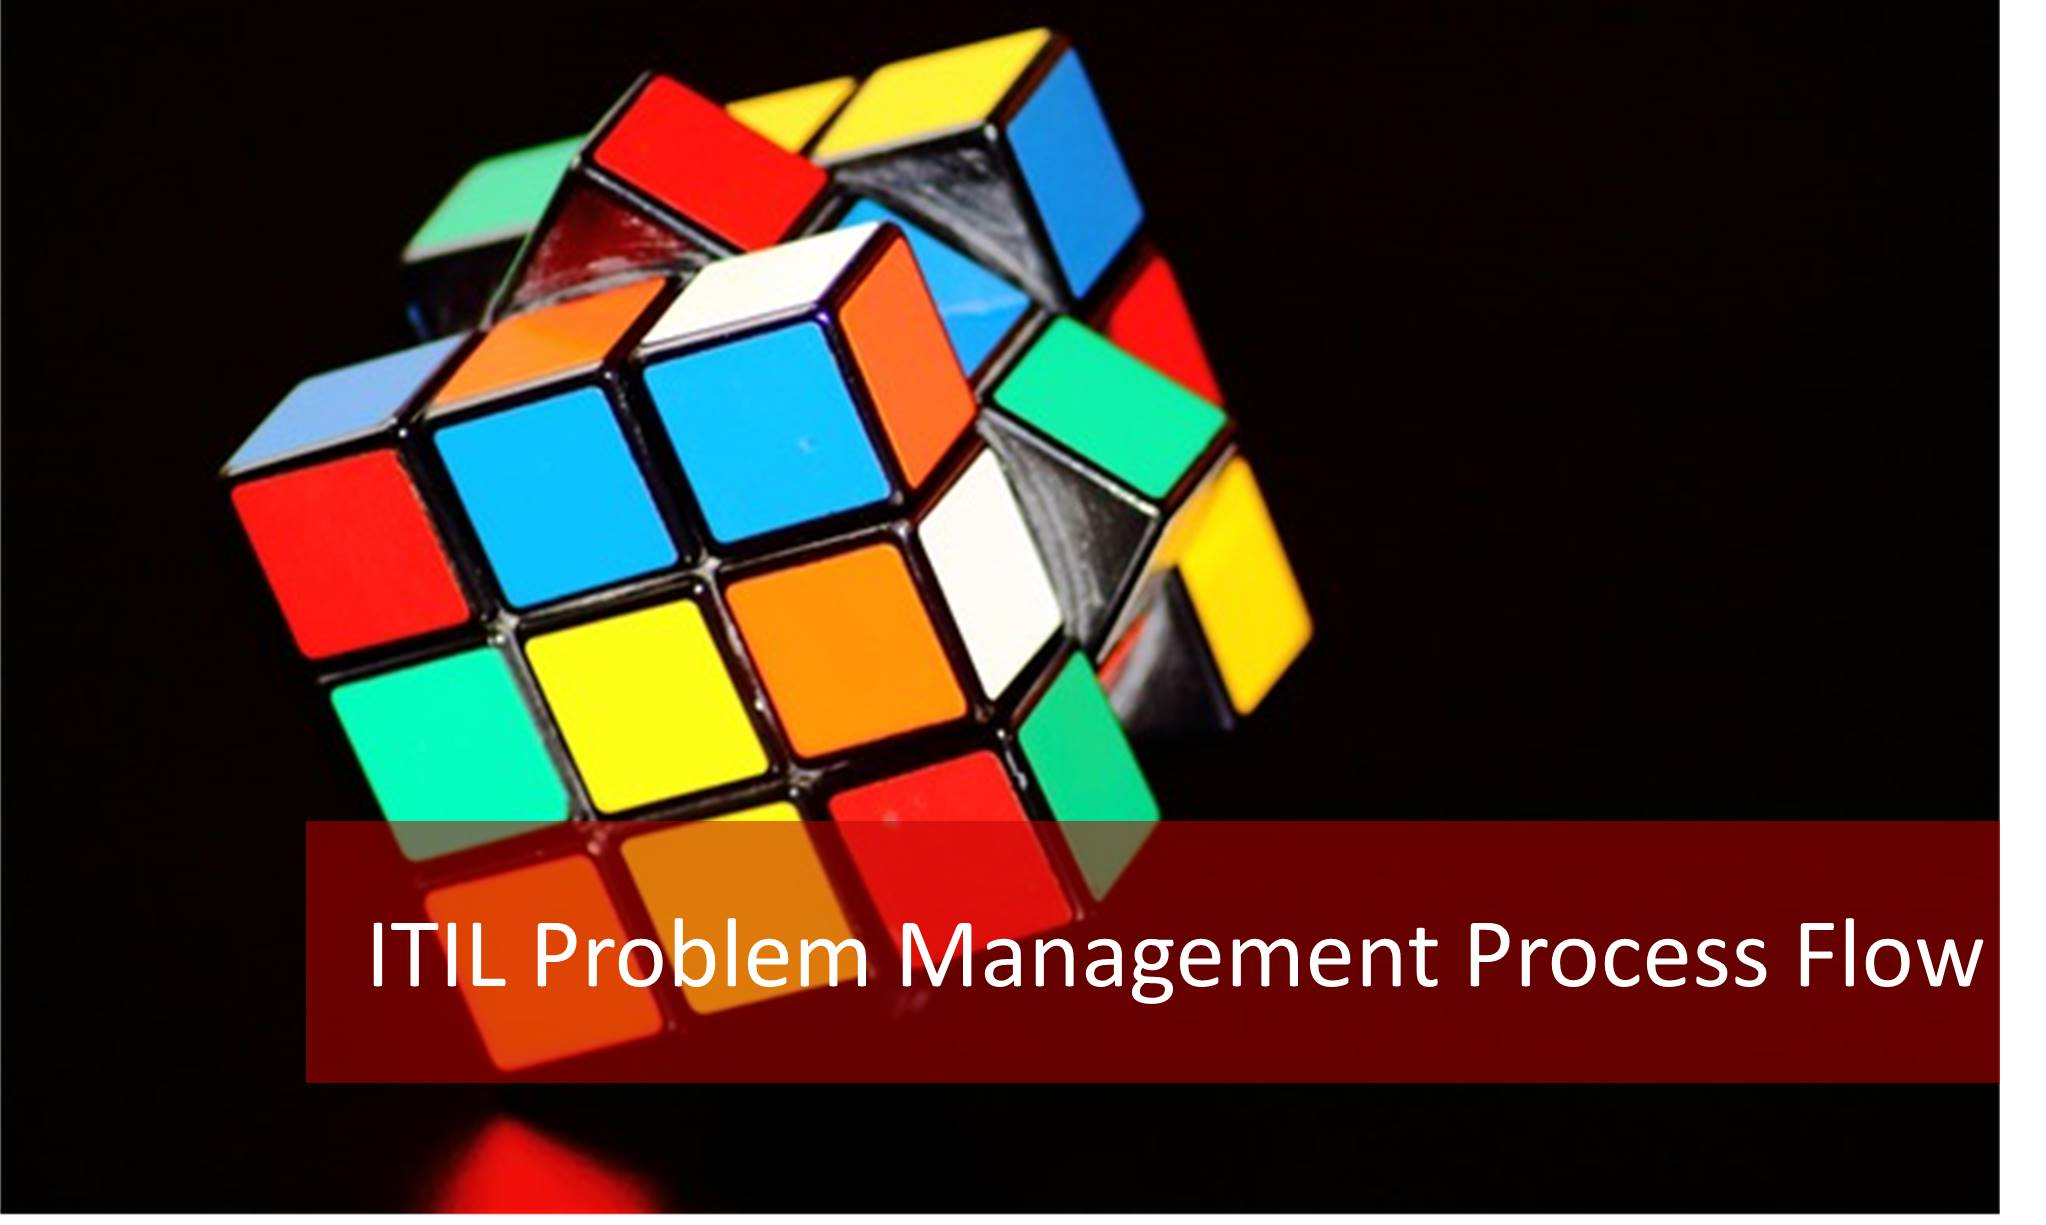 Itil Problem Management Process Flow In 3 Steps Master Of Project